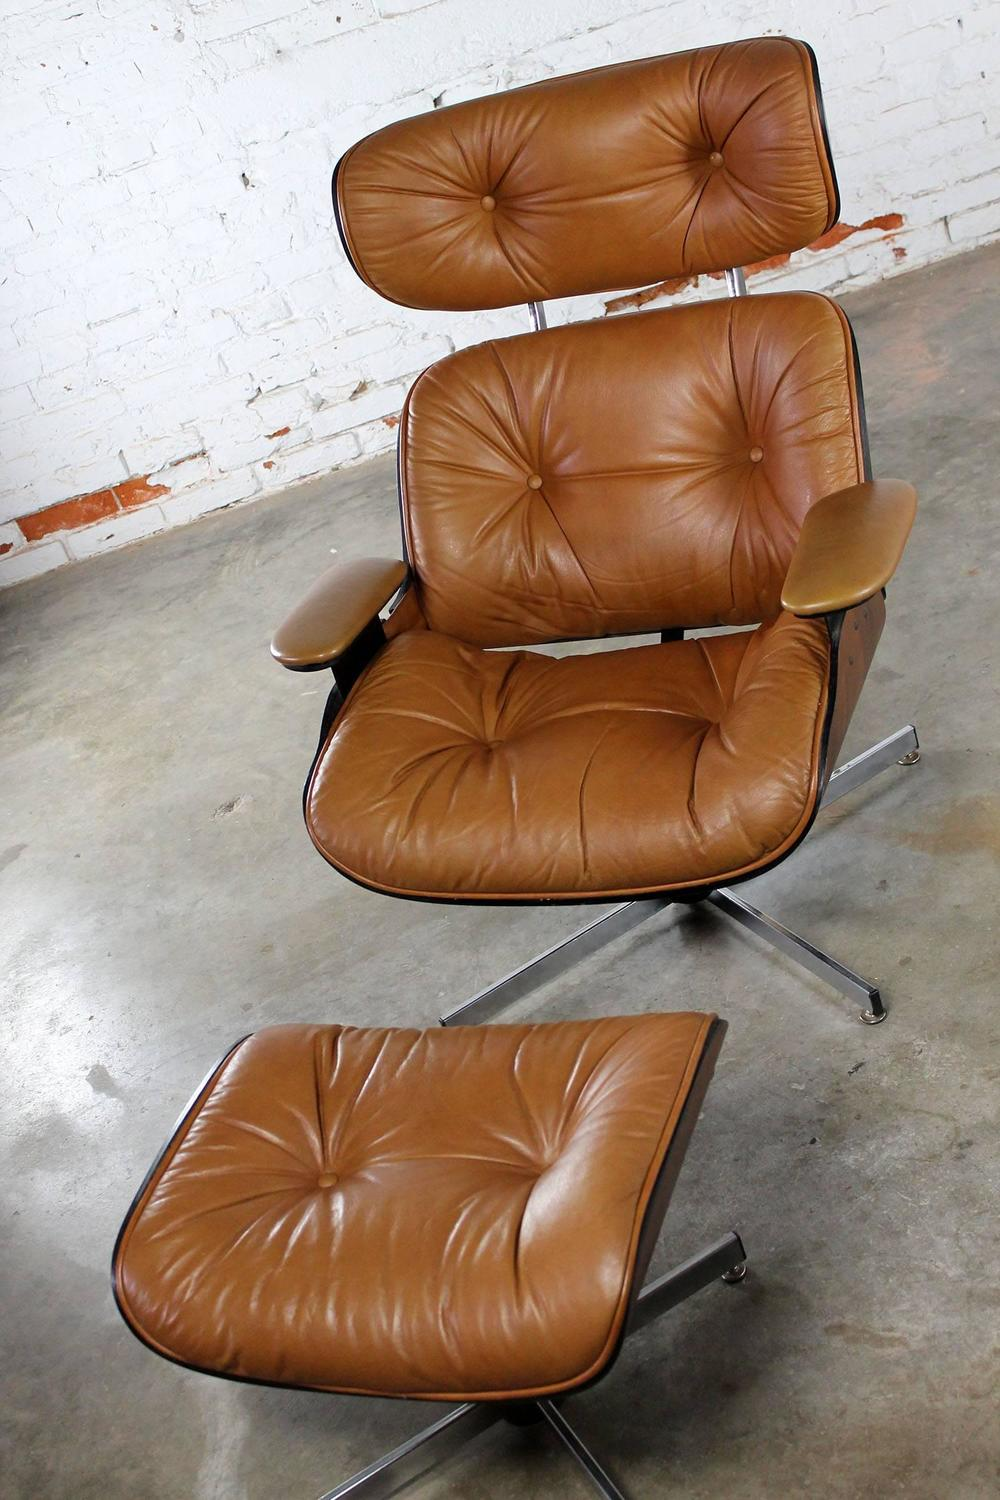 MidCentury Modern Plycraft EamesStyle Lounge Chair and